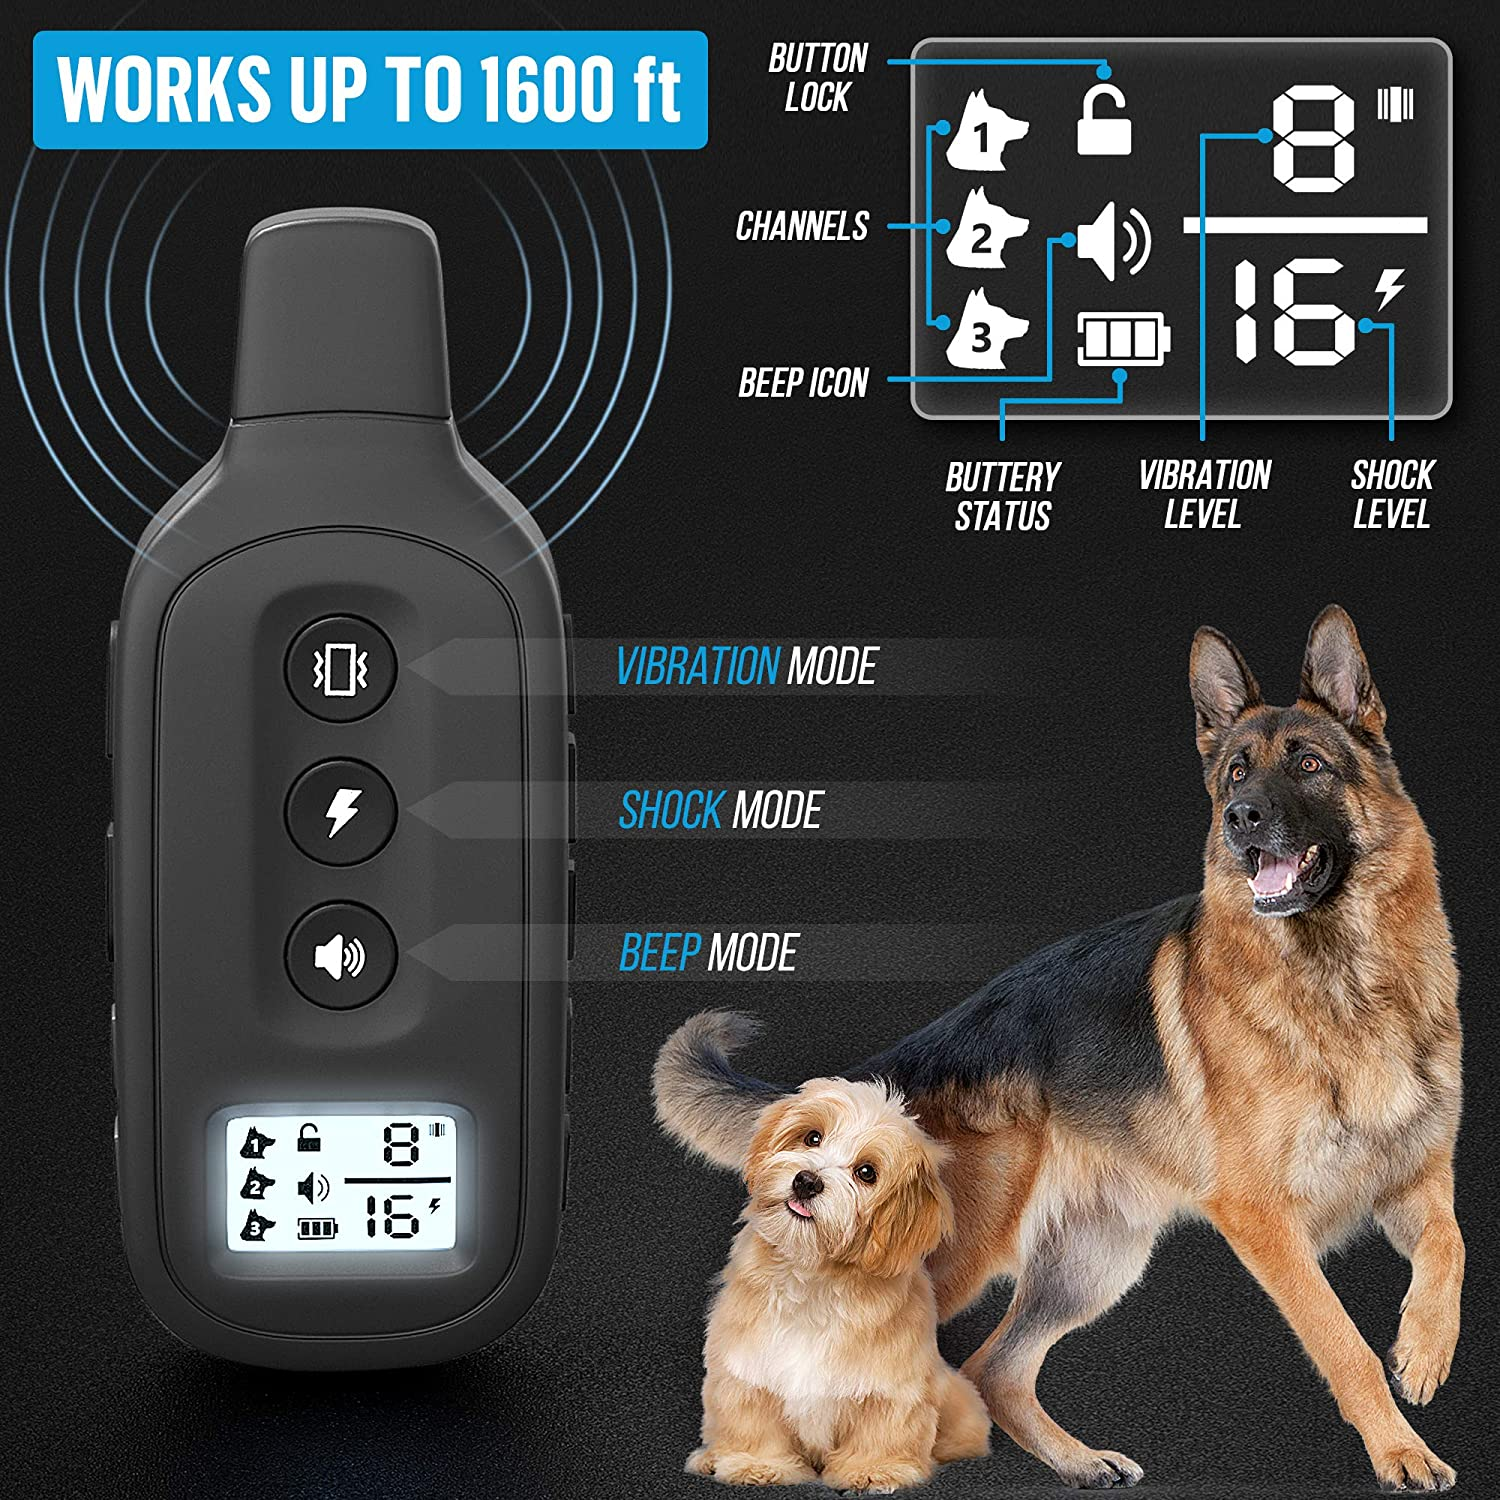 Yox Waterproof Dog Training Collar With Remote Static Shock, Vibration, Beep 3 Training Modes 1200 Foot Range For Dogs 15-100 LBS Adjustable Levels Locking Keypad To Prevent Accidental Shocks